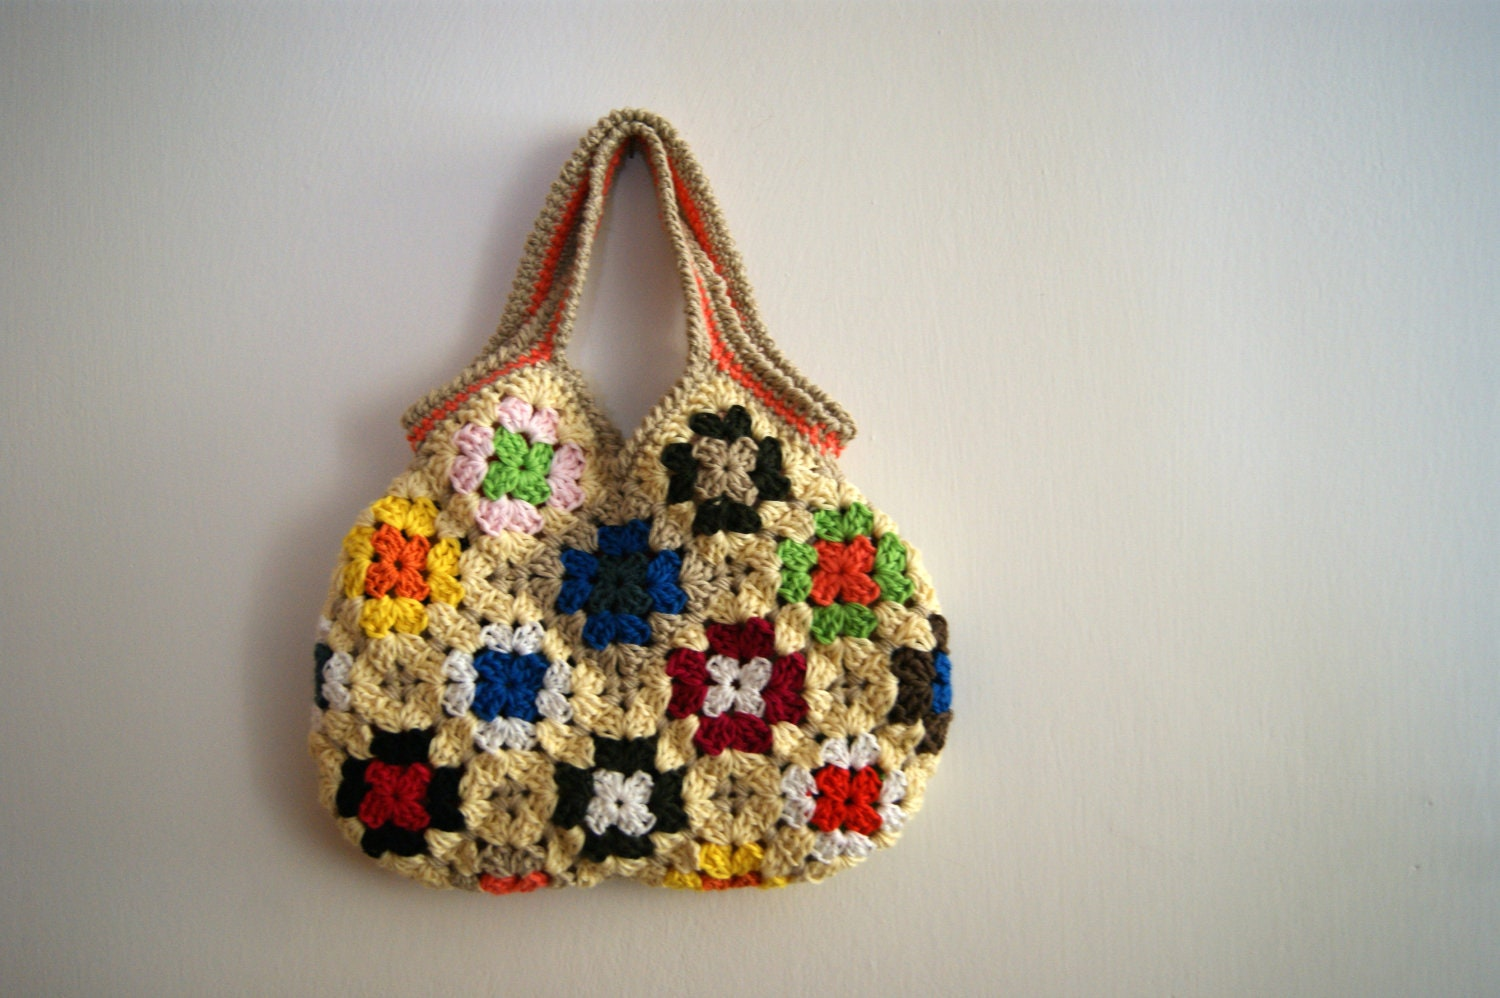 Crochet granny square small bag by knittingcate on Etsy